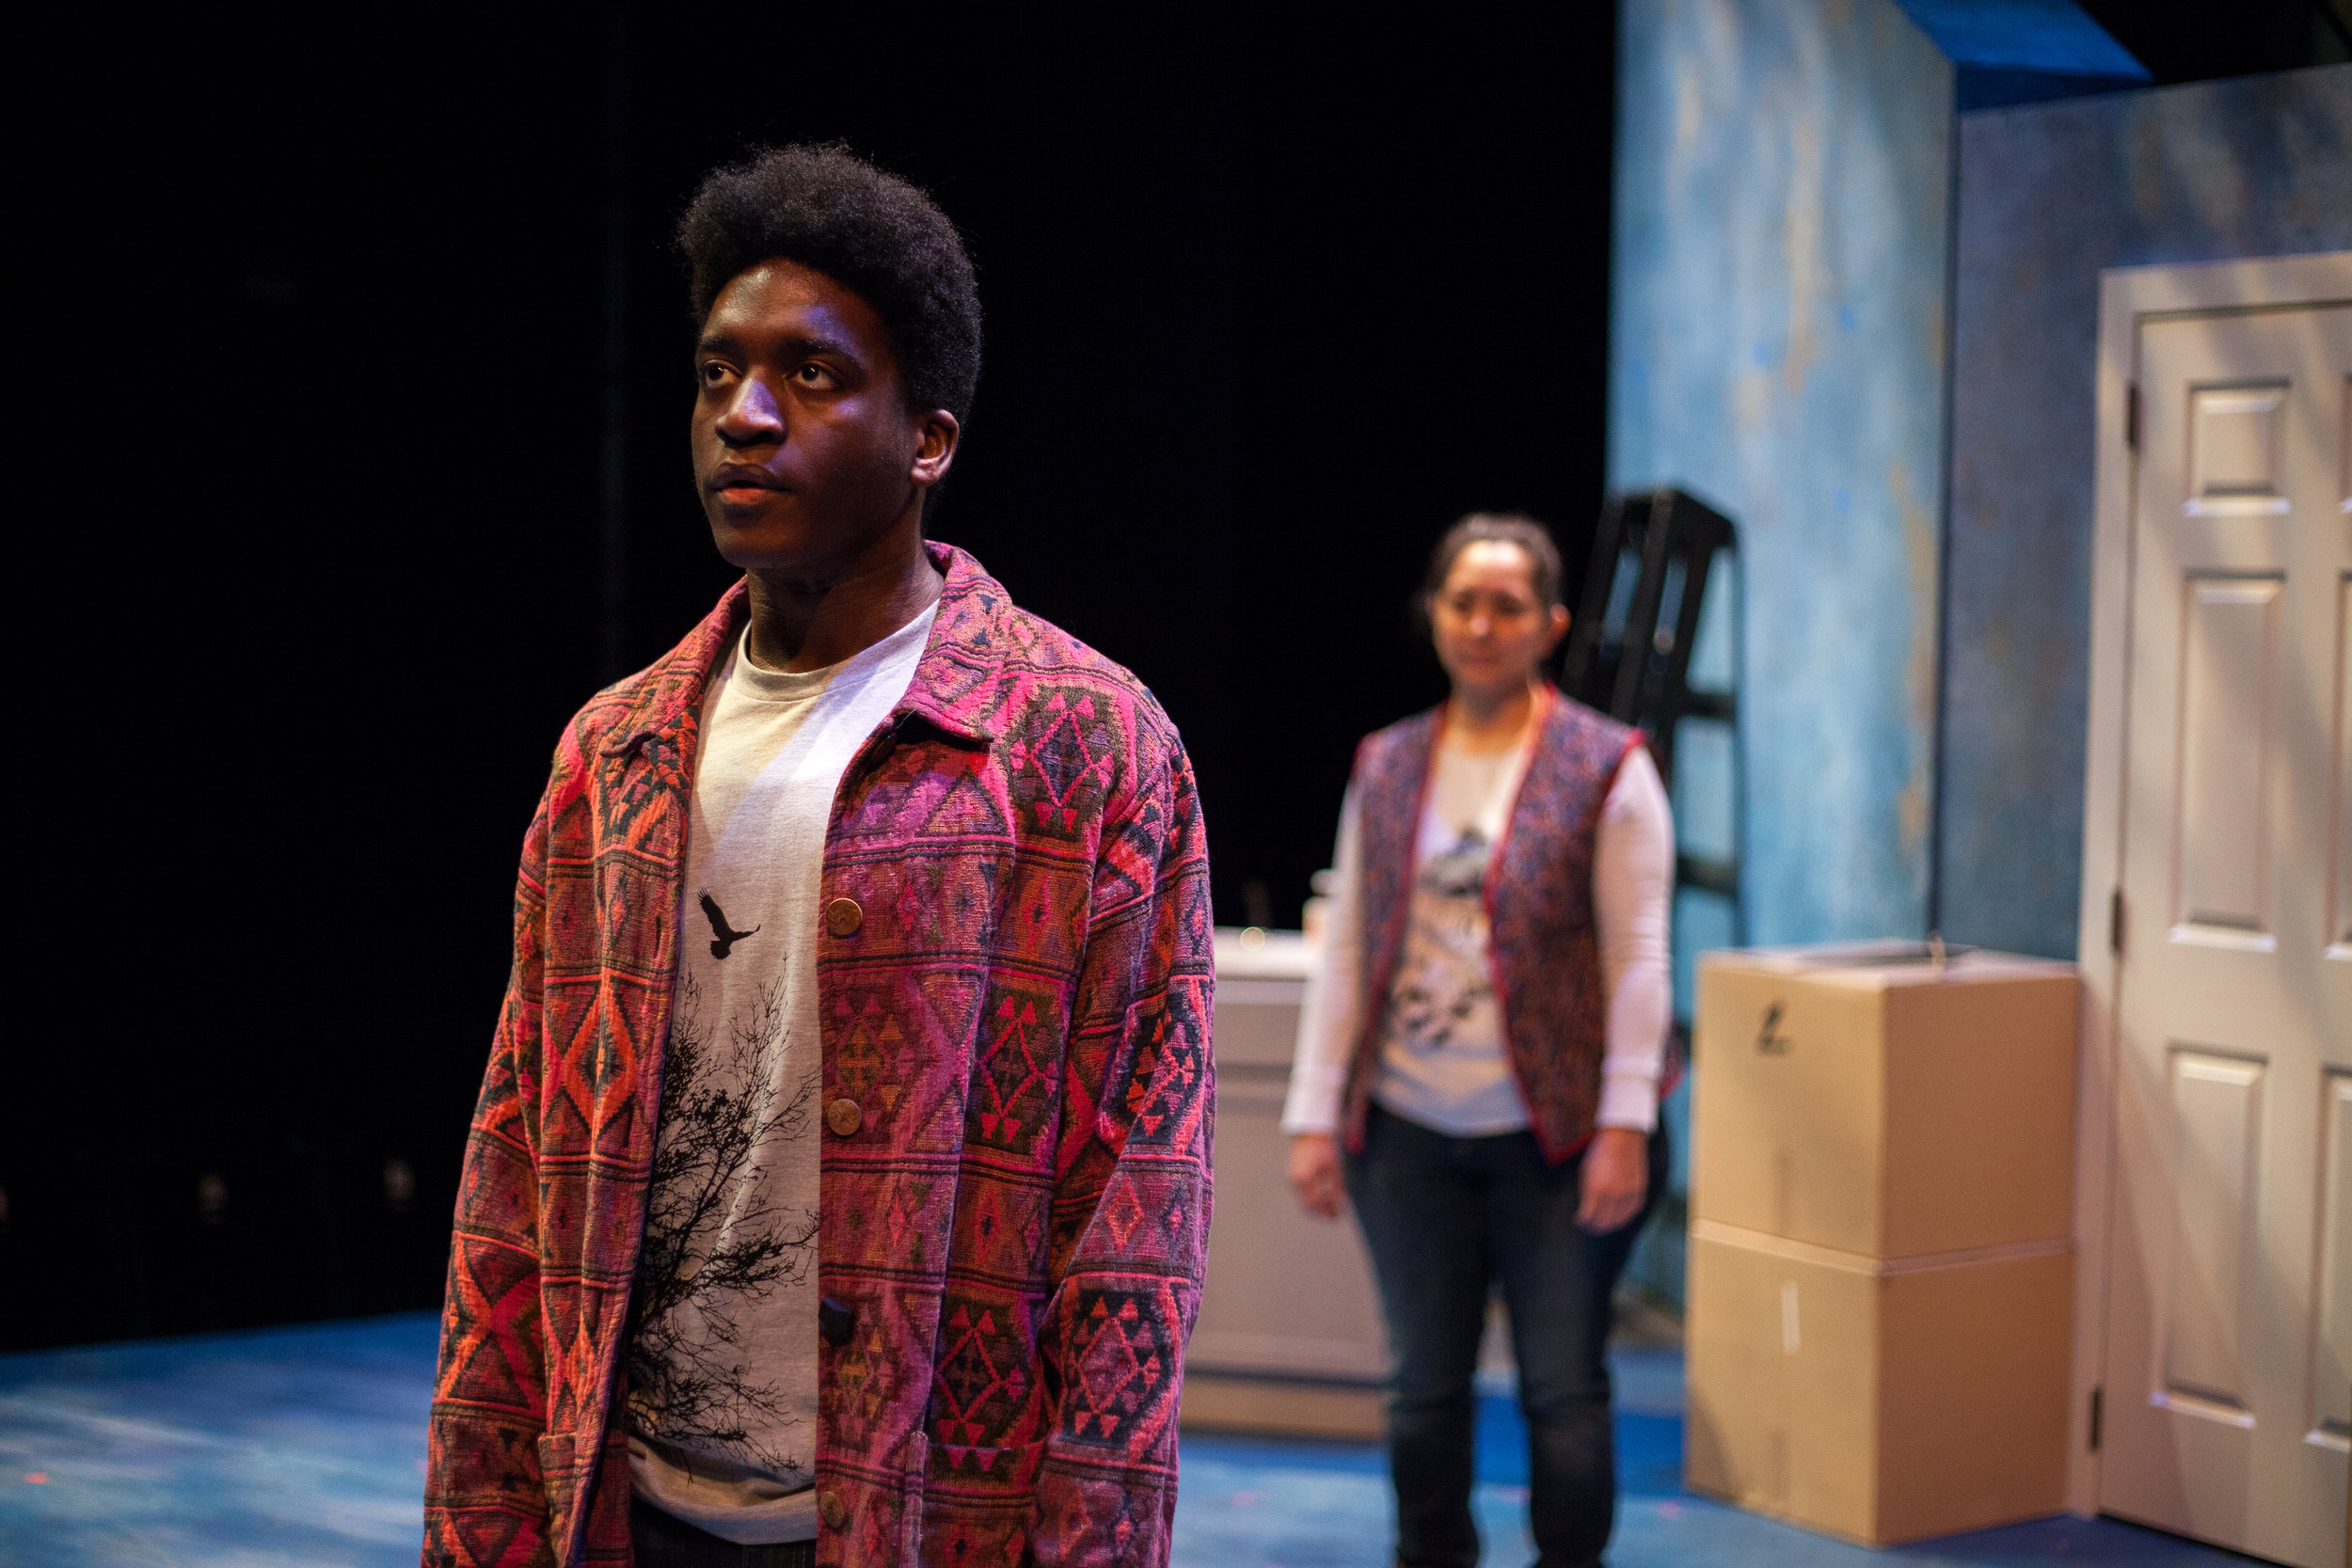 Daniel Nkoola and Martinique Duchene-Phillips in UT Austin's production, 2018. Photo: Lawrence Peart, Courtesy of The University of Texas at Austin